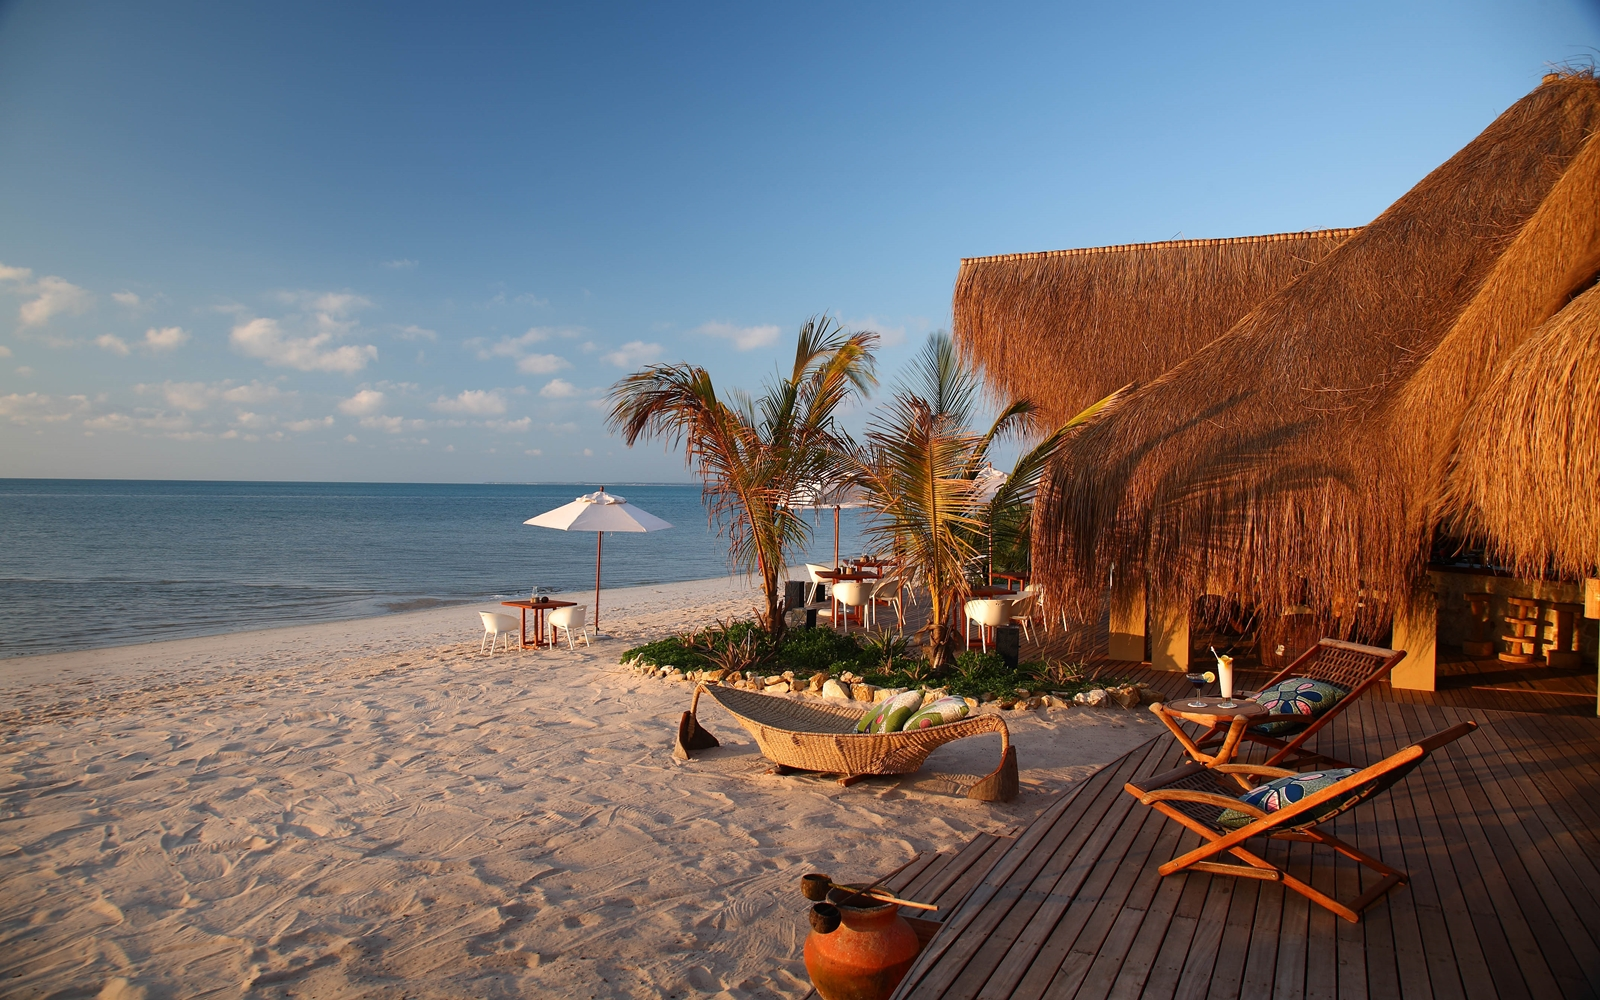 Mozambique beaches fleewinter tailor made holidays for Small luxury beach hotels